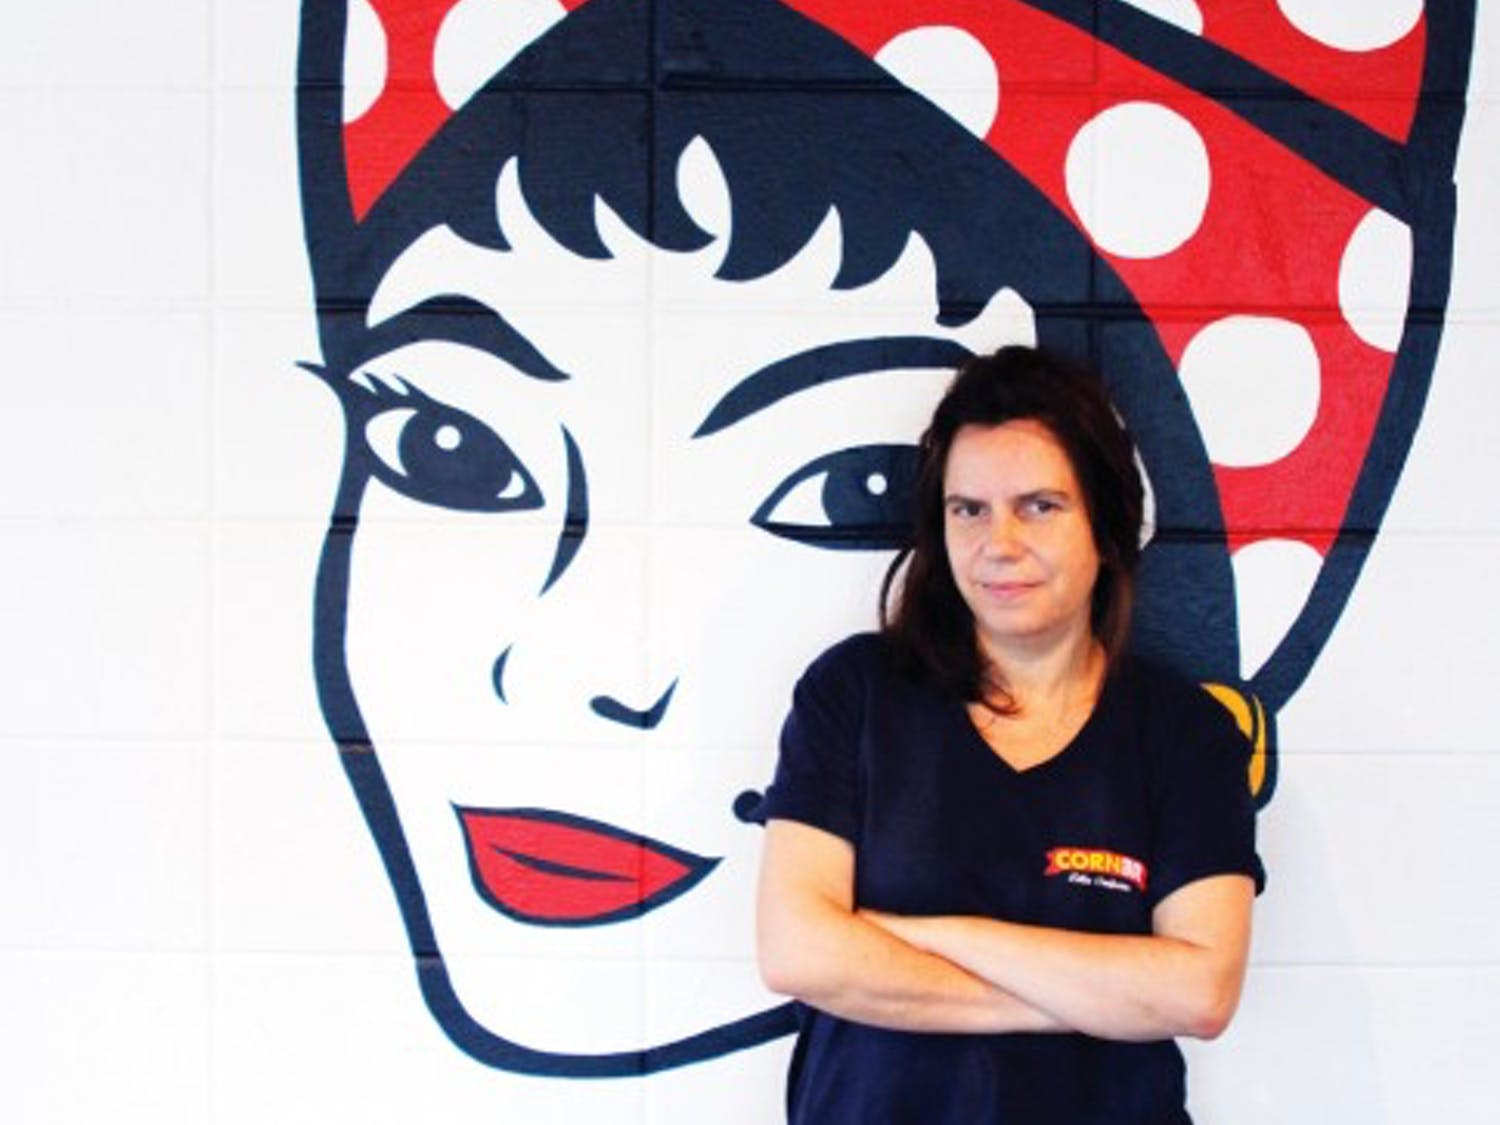 Venezuelan native Leonor Antoni, 47, is the owner and chef at Corner, a Latin fusion restaurant at 1220 W. University Ave.